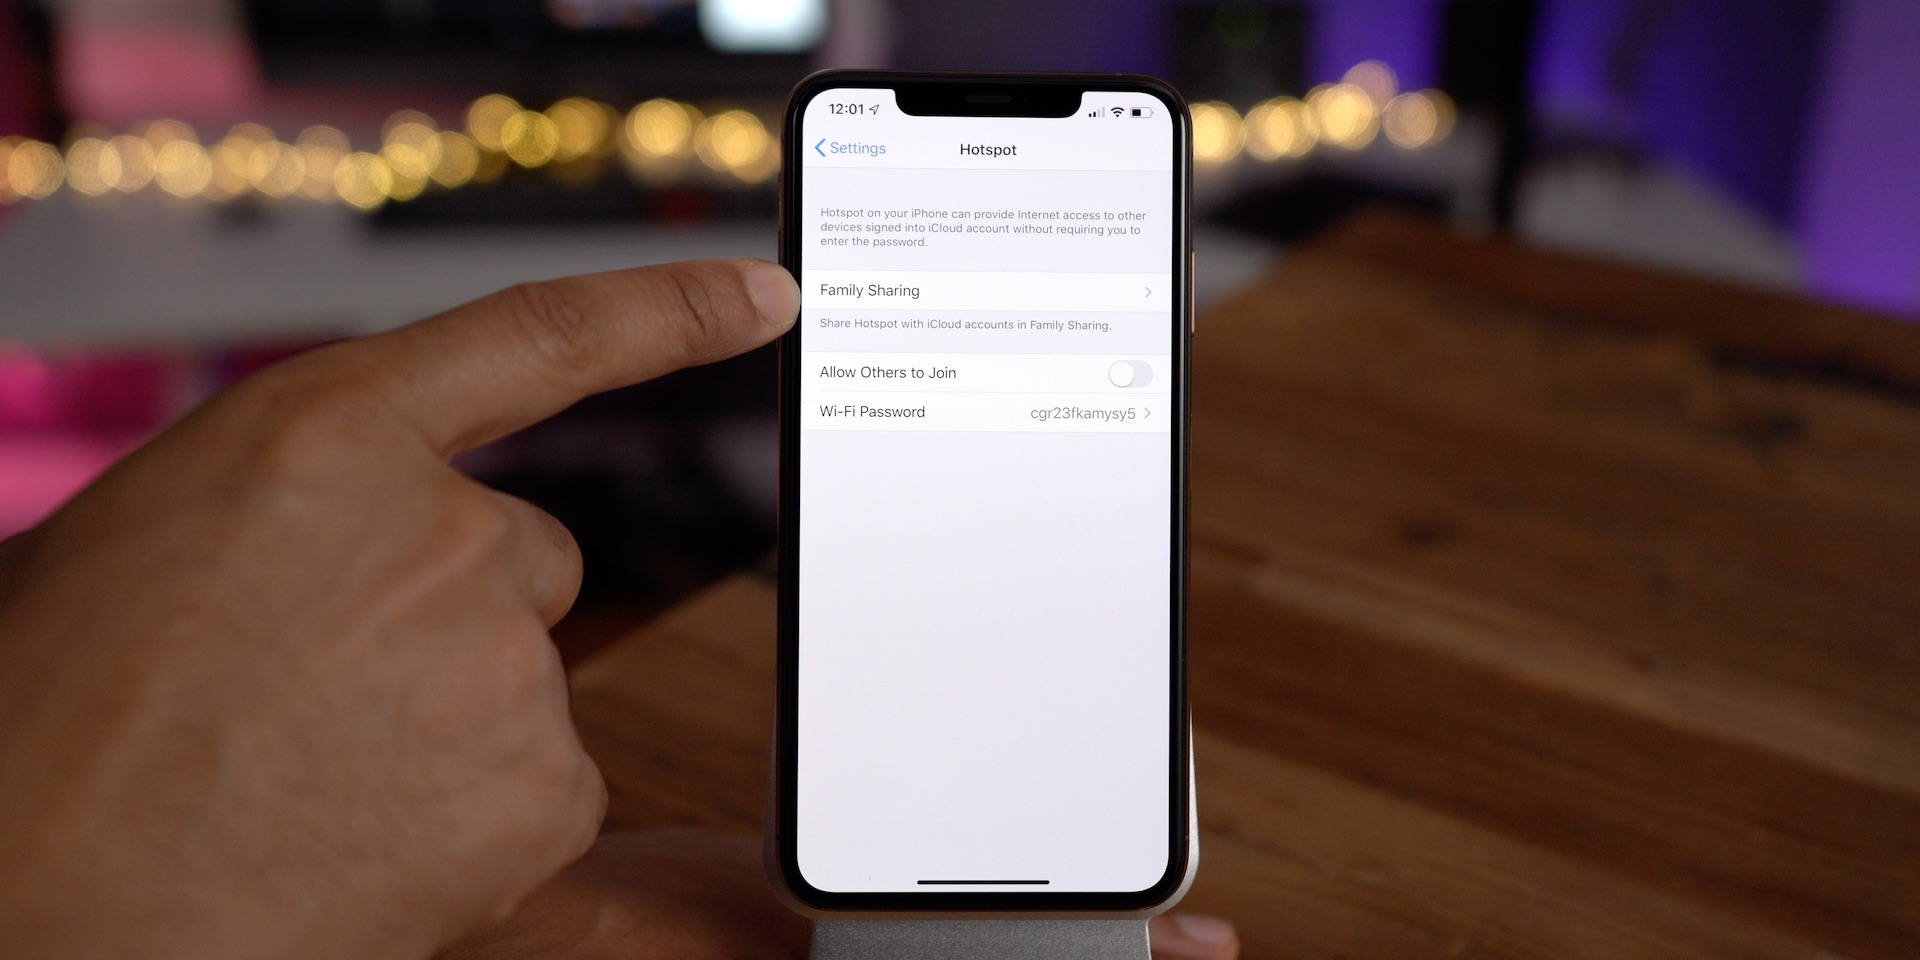 Hands-on with 200+ iOS 13 changes and features [Video] - 9to5Mac